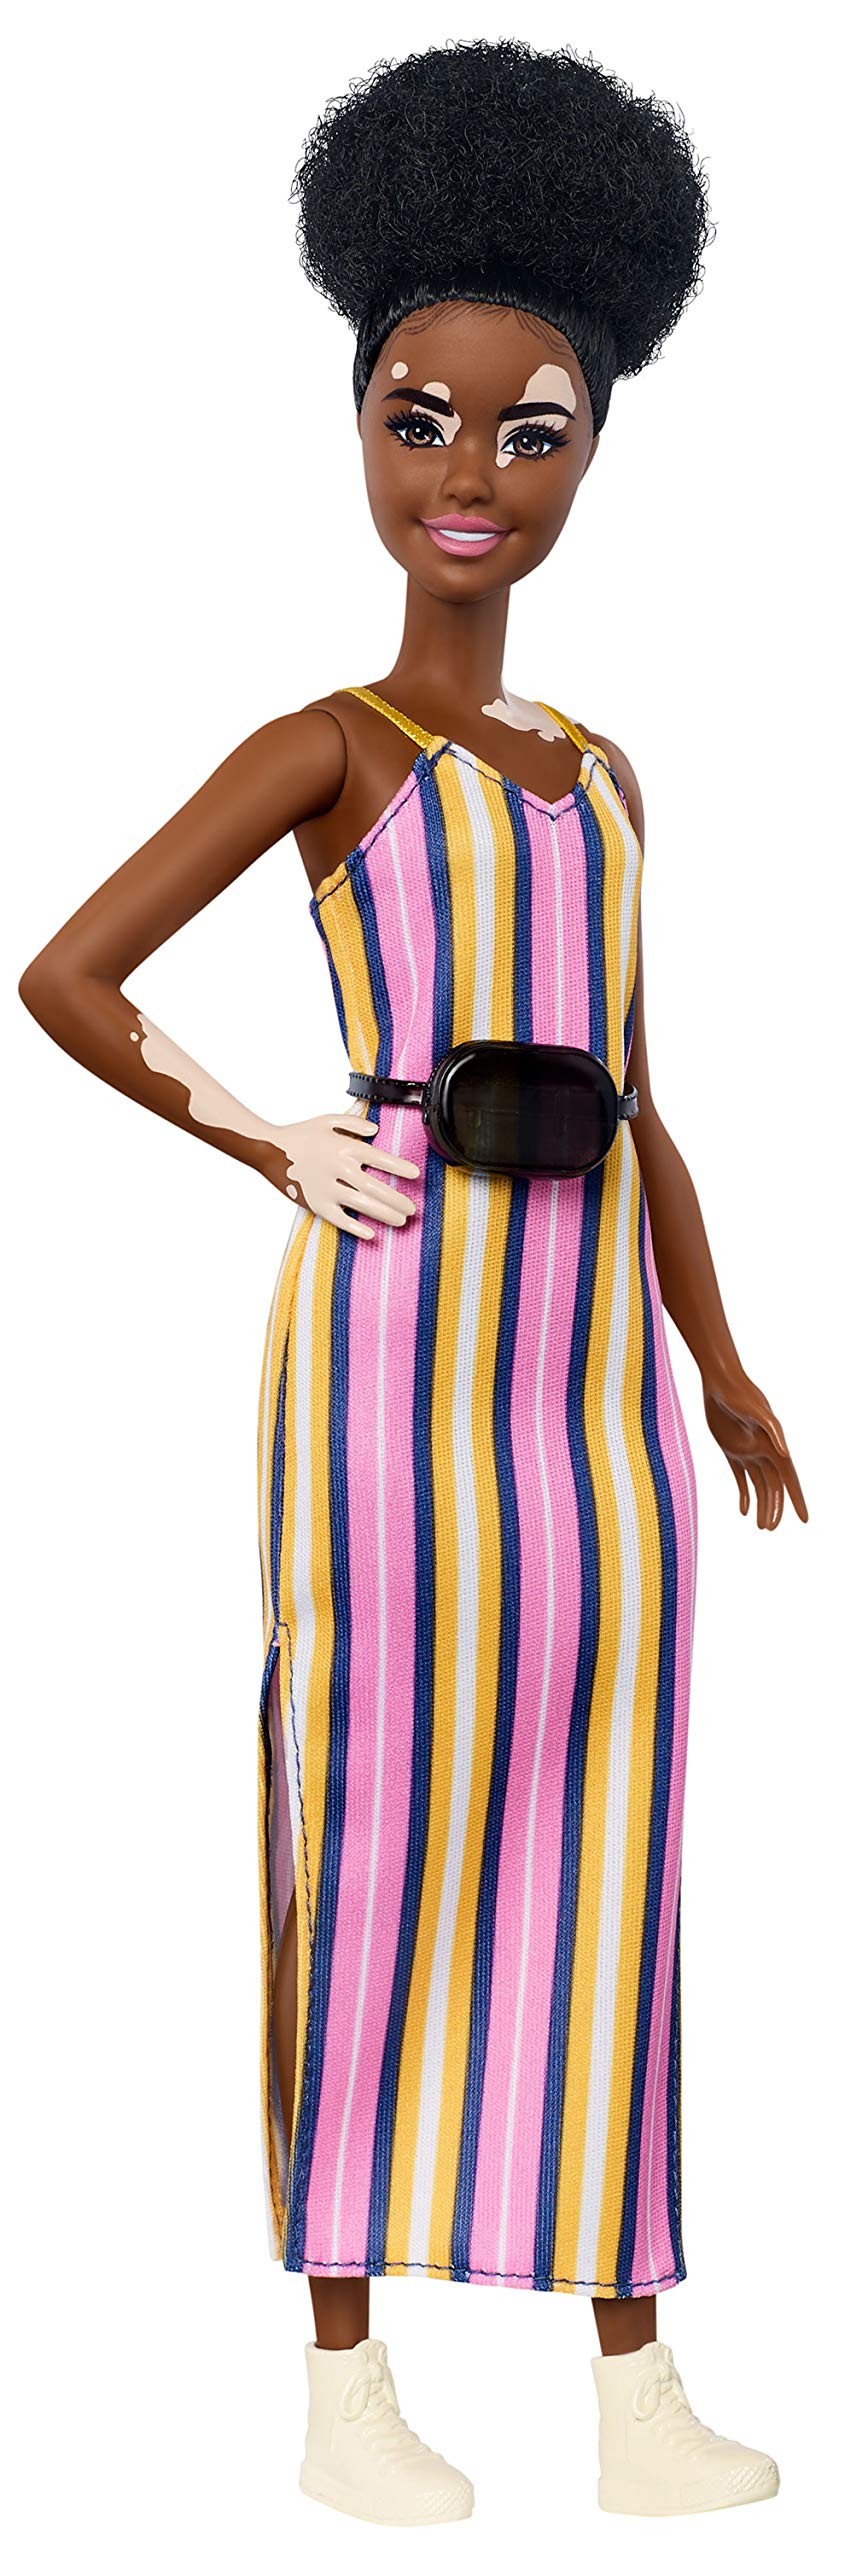 Barbie Fashionistas Doll with Vitiligo and Curly Brunette Hair Wearing Striped Dress and Accessories, for 3 to 8 Year Olds